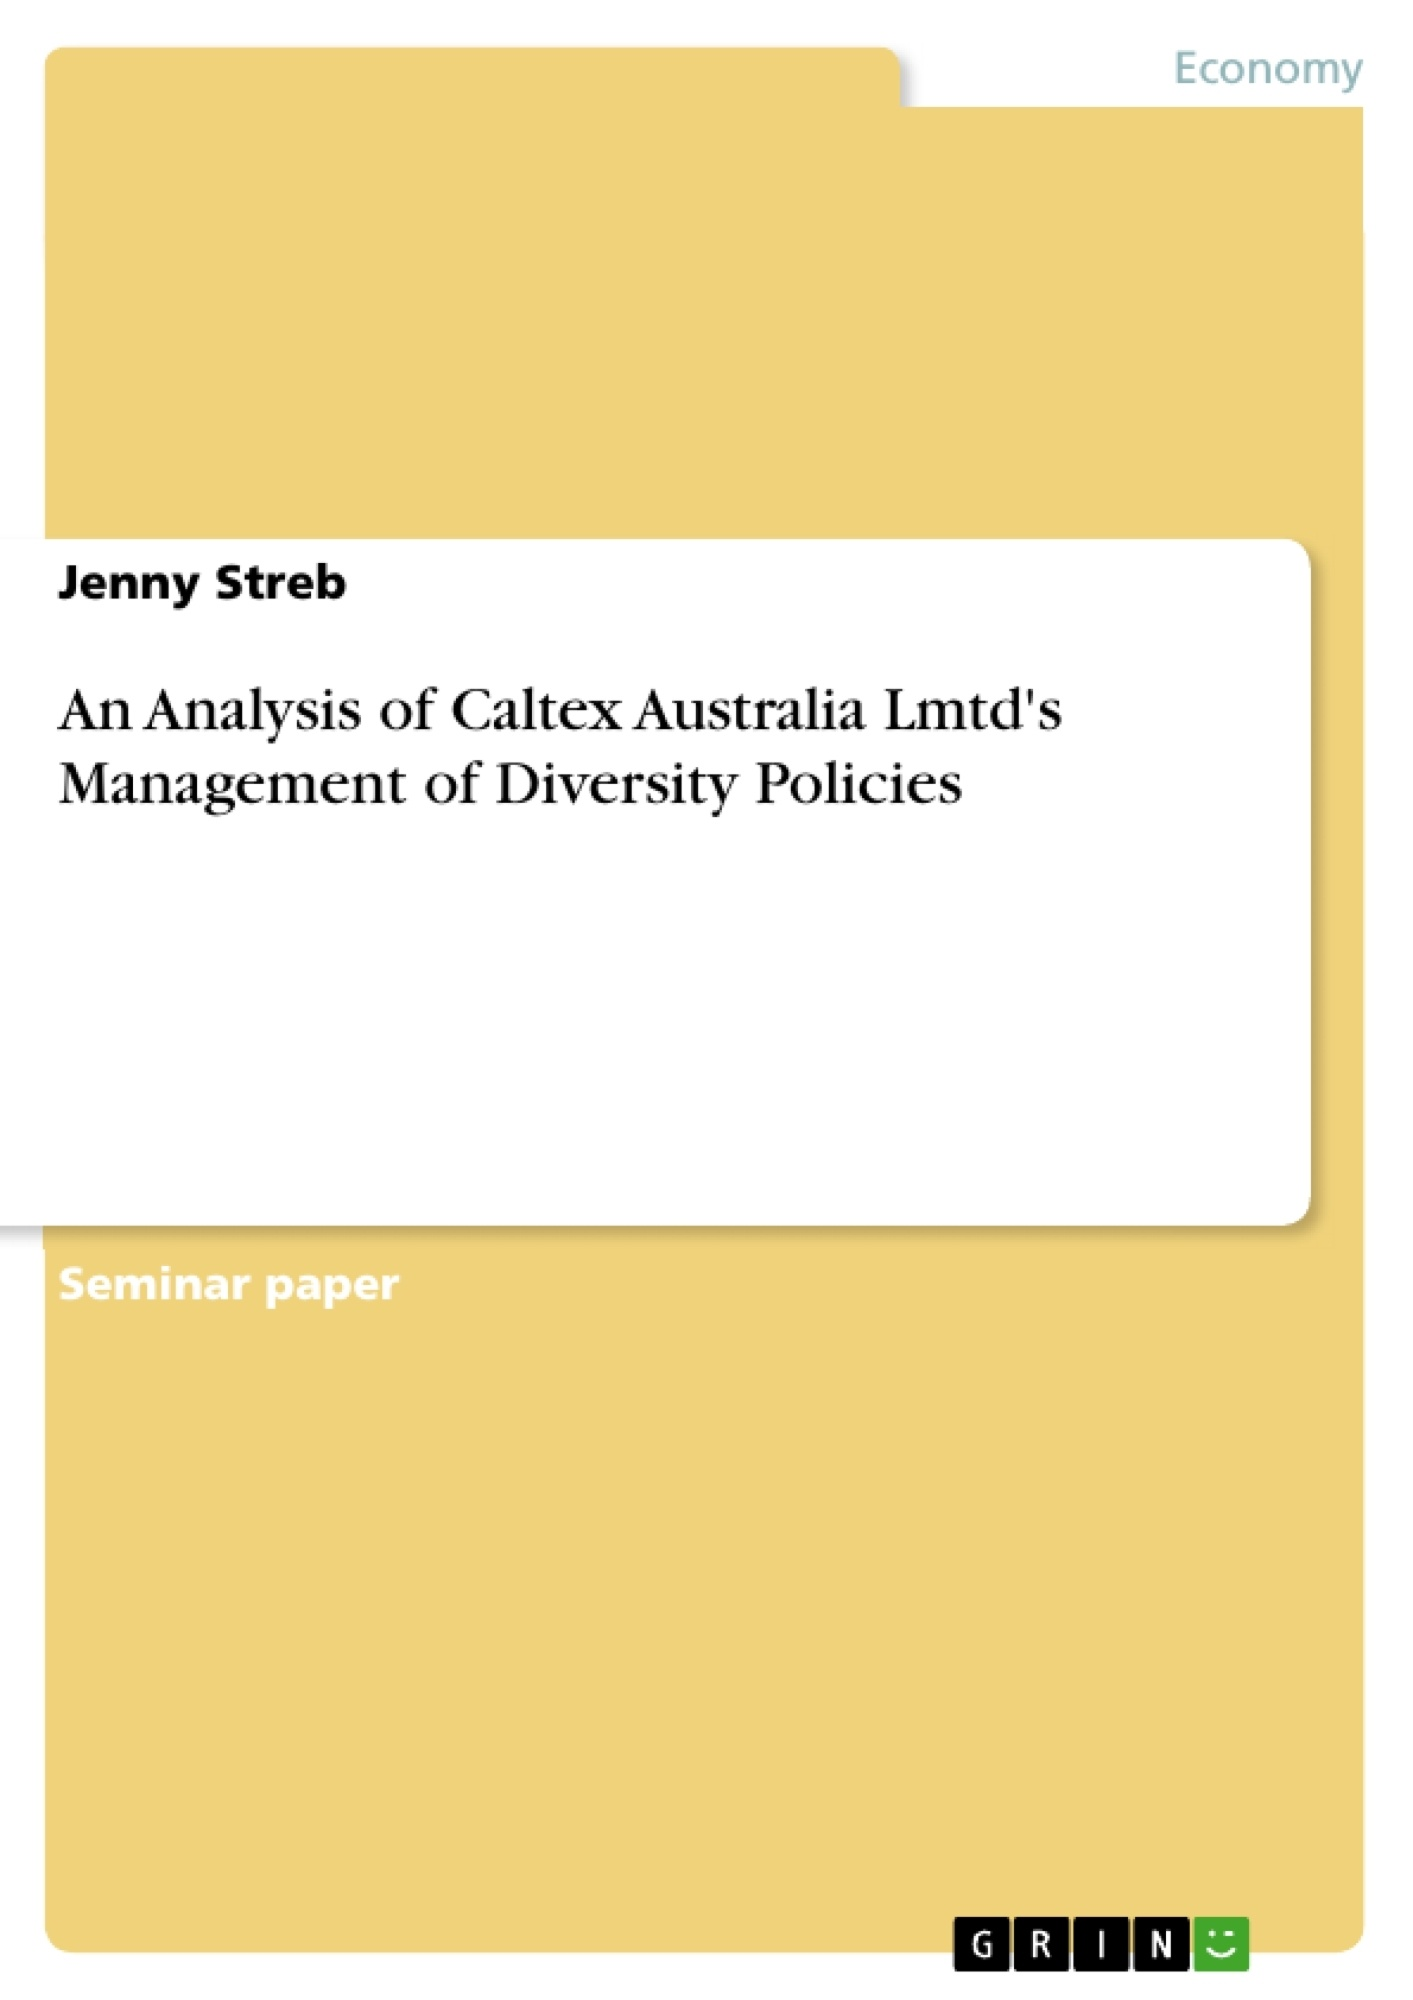 Title: An Analysis of Caltex Australia Lmtd's Management of Diversity Policies